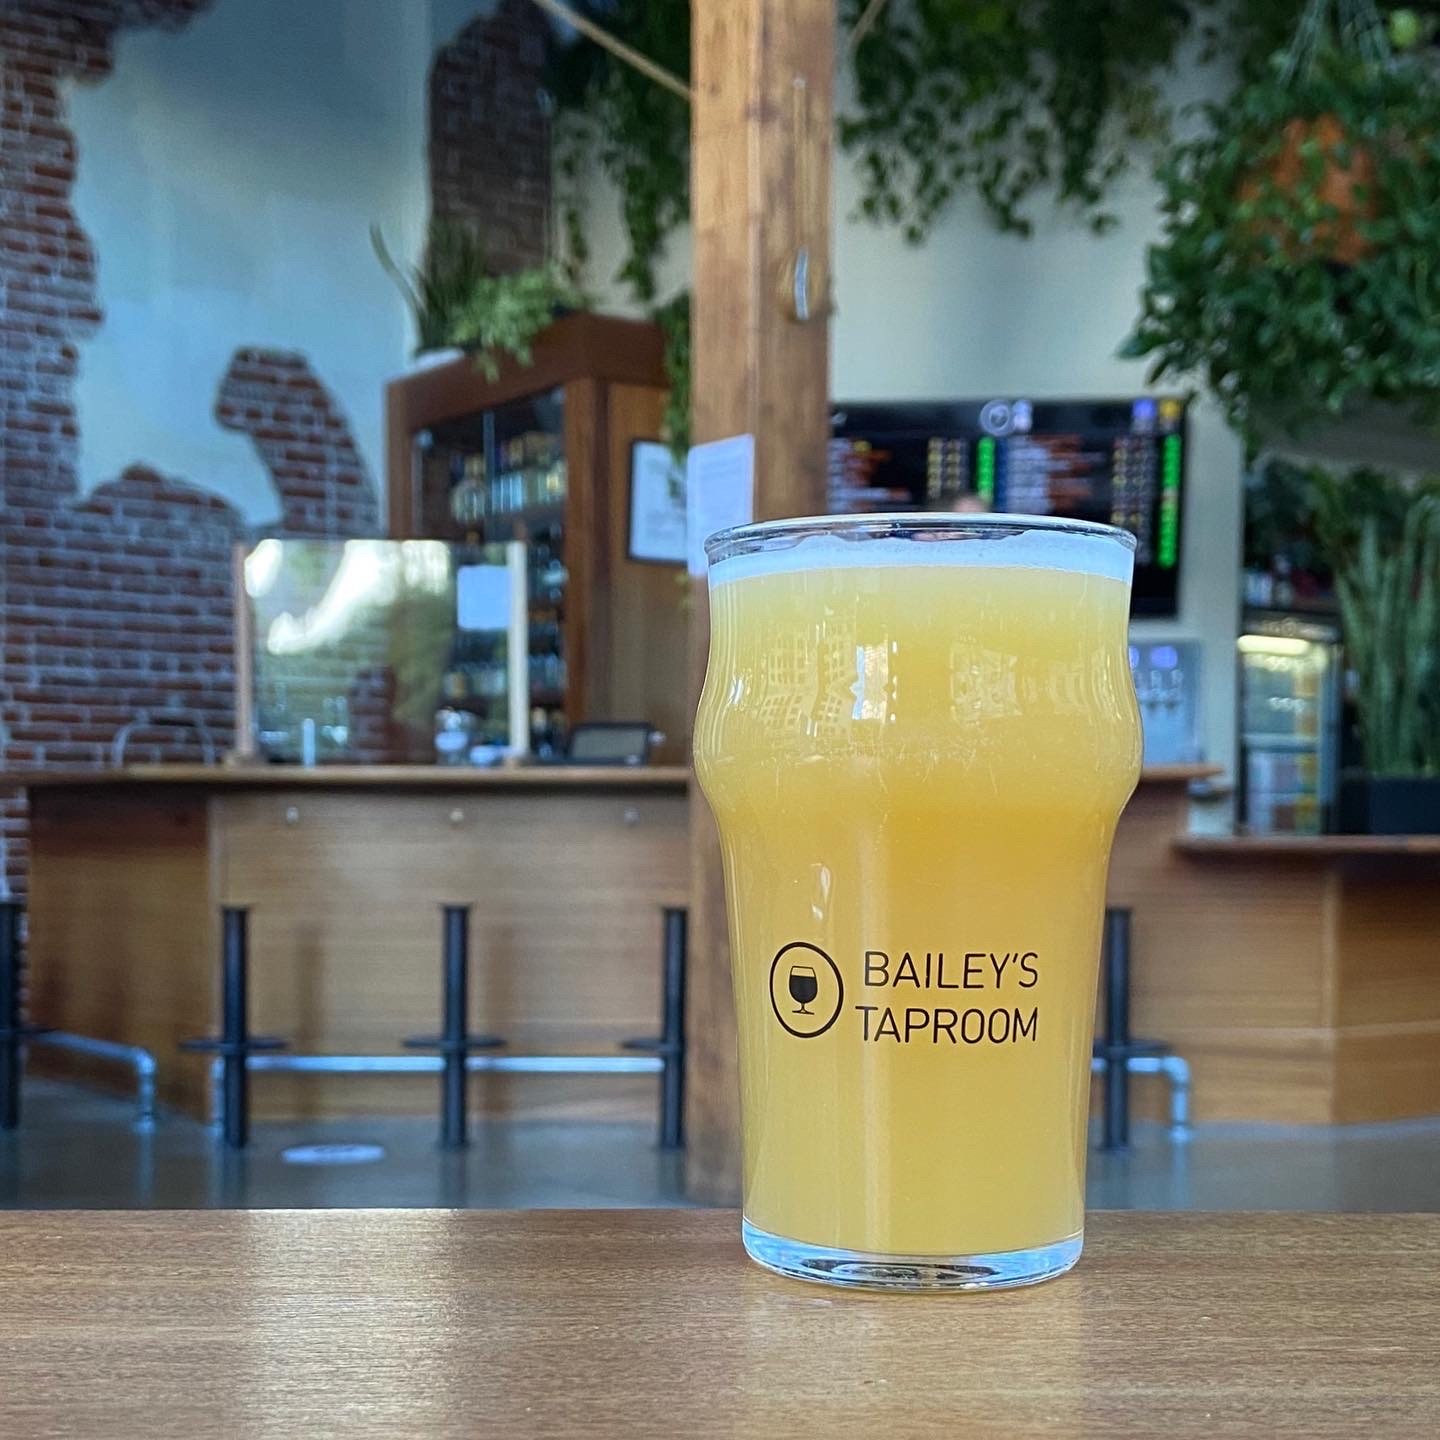 A pint of 2020 3-Way IPA at Bailey's Taproom after it re-opened under Phase 1 during the COVID-19 pandemic.